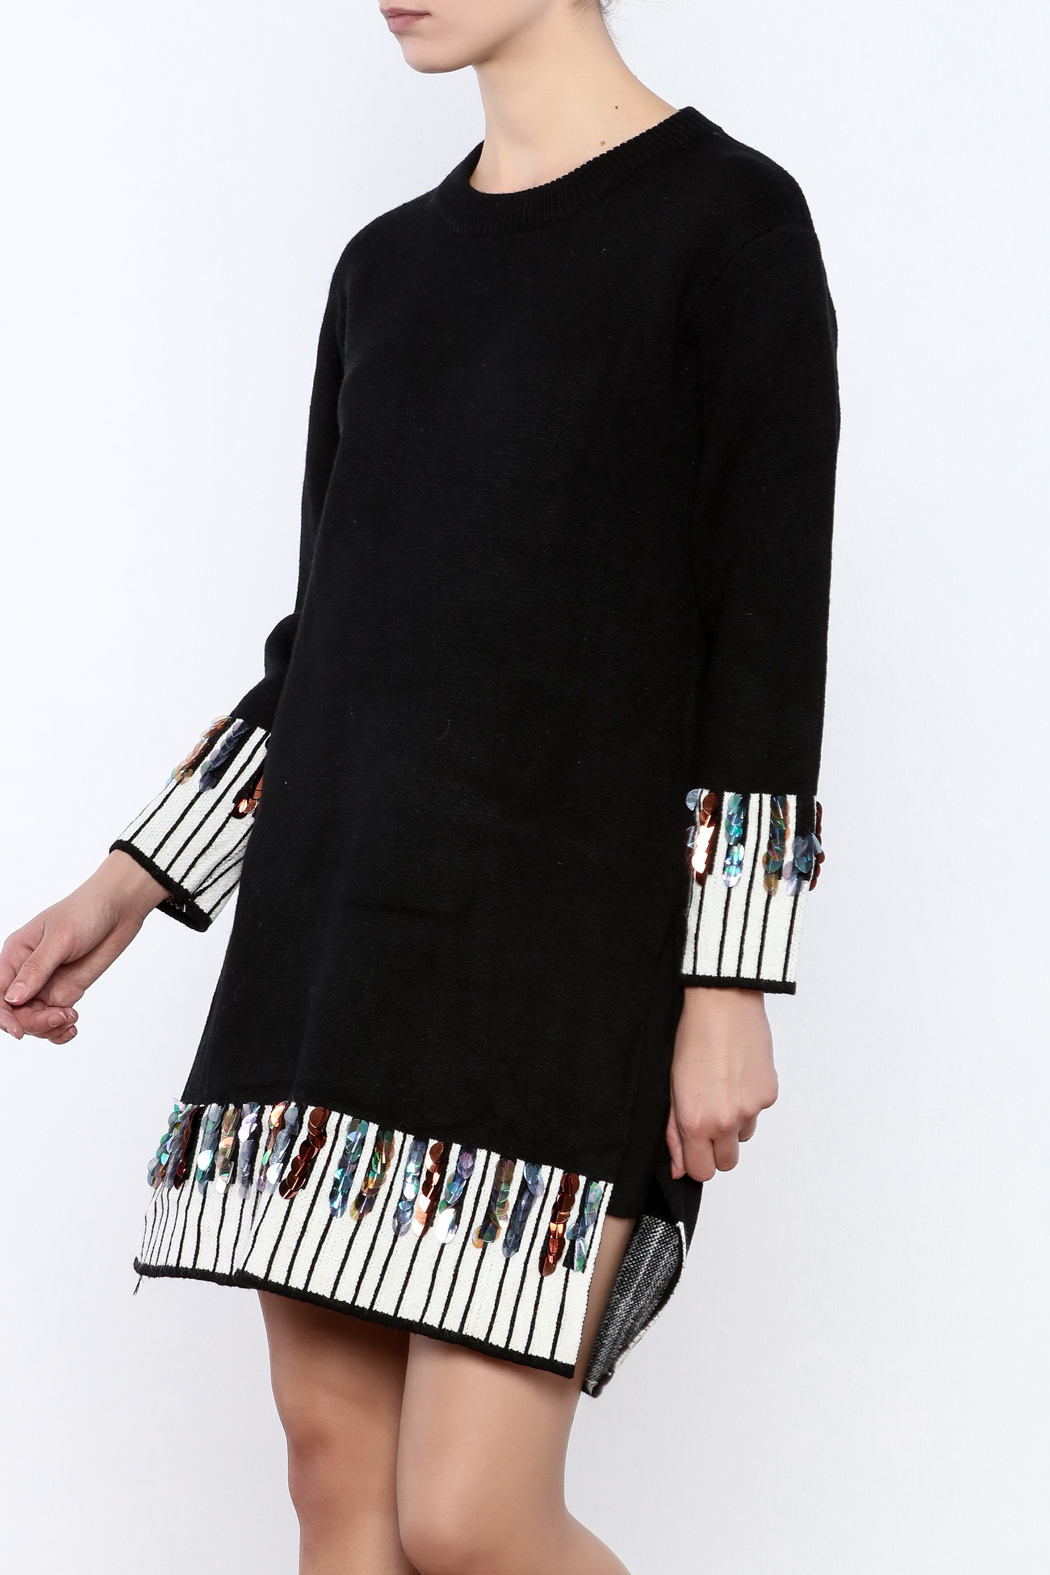 Think Closet Piano Keys Dress From Williamsburg By Think